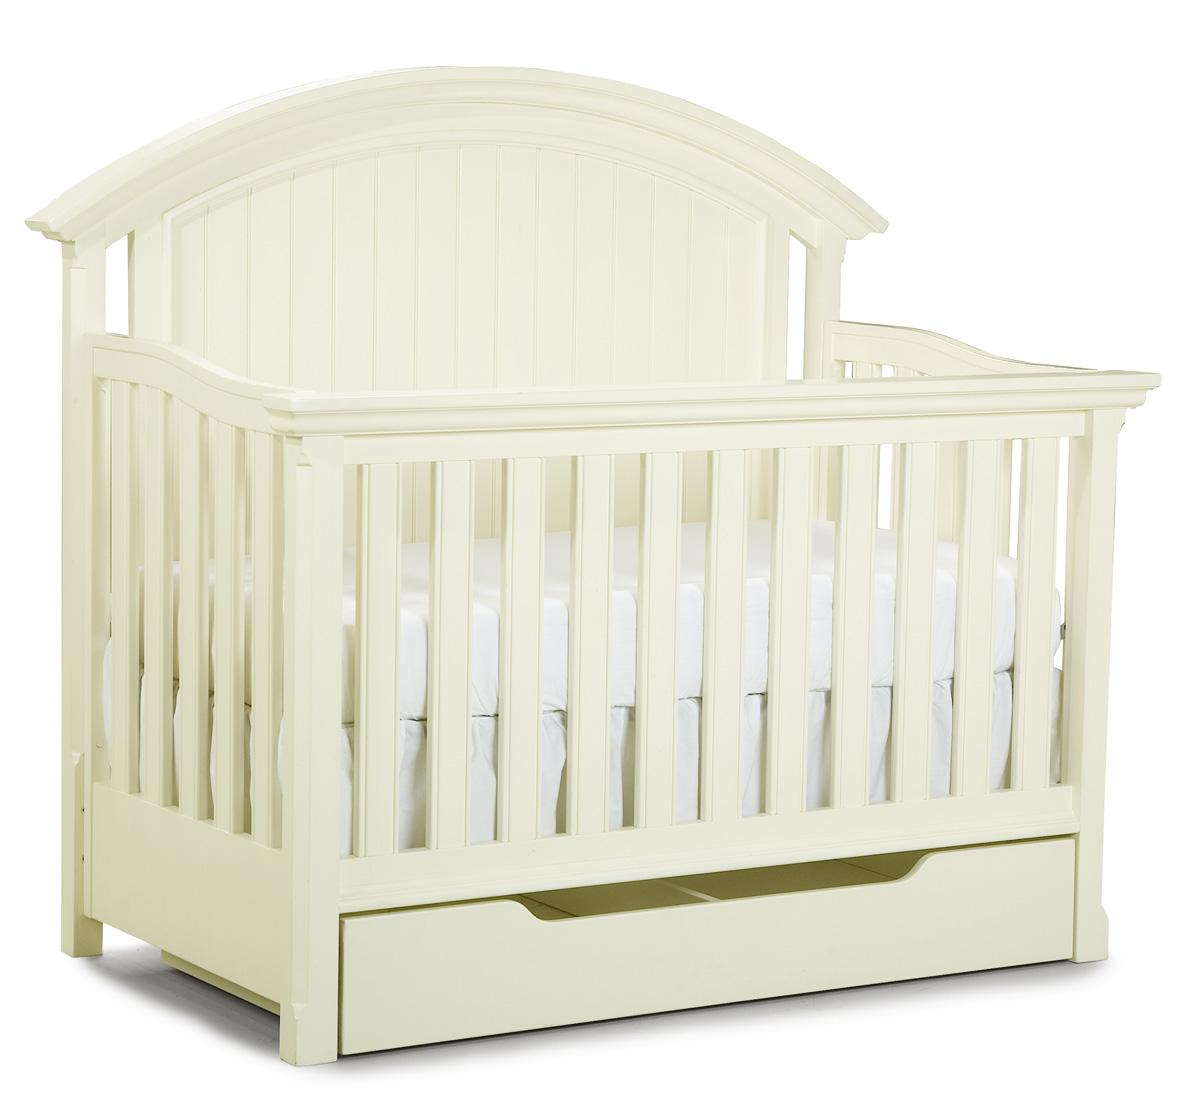 Legacy Classic Kids Summer Breeze Convertible Crib with Drawer - Item Number: 481-8900+8910